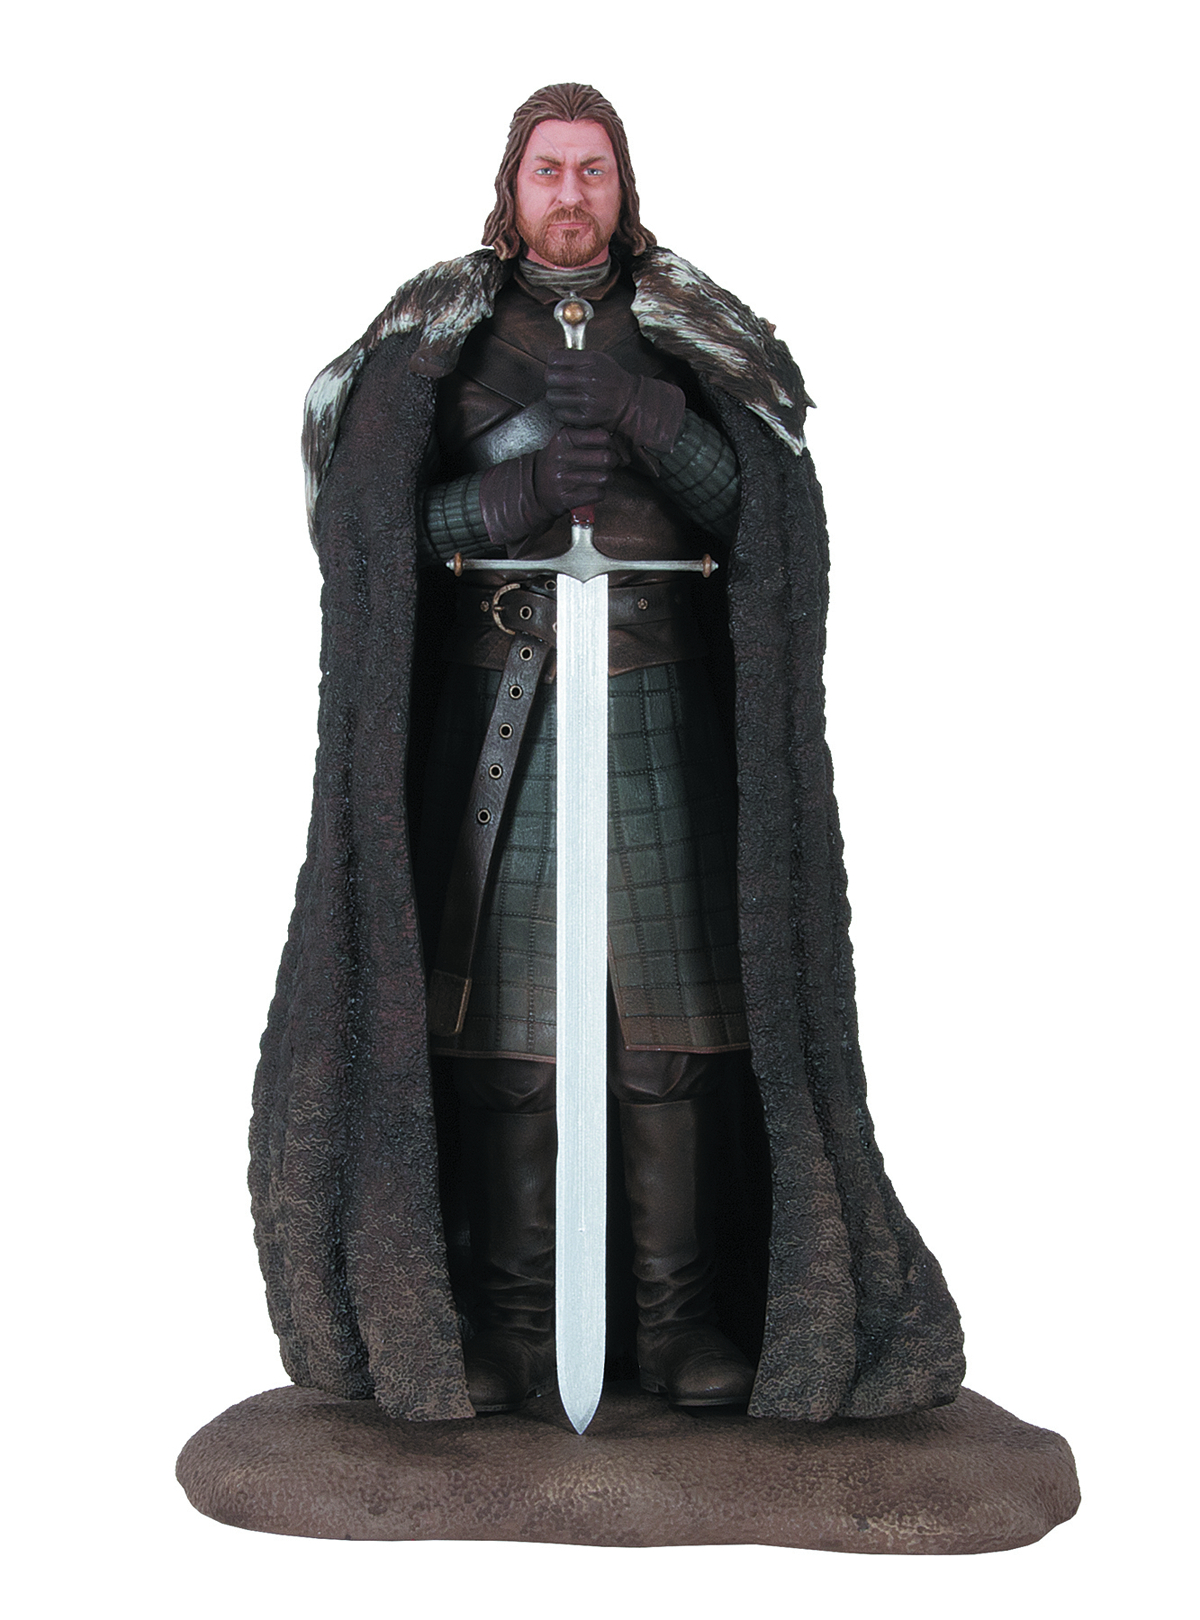 GAME OF THRONES FIGURE NED STARK